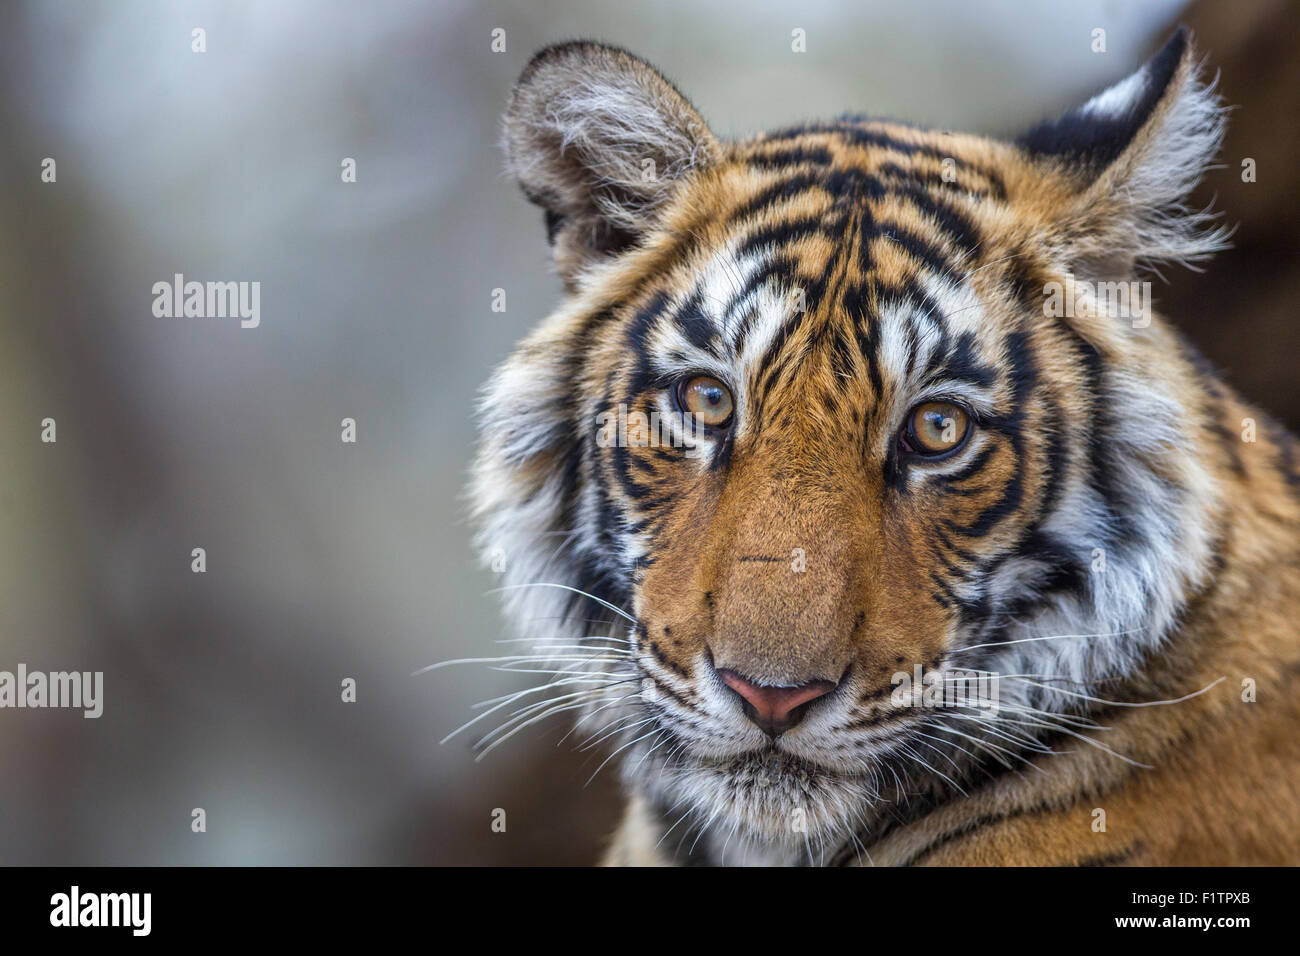 Young wild Bengal Tiger Portrait  Ranthambhore forest. [Panthera Tigris] - Stock Image